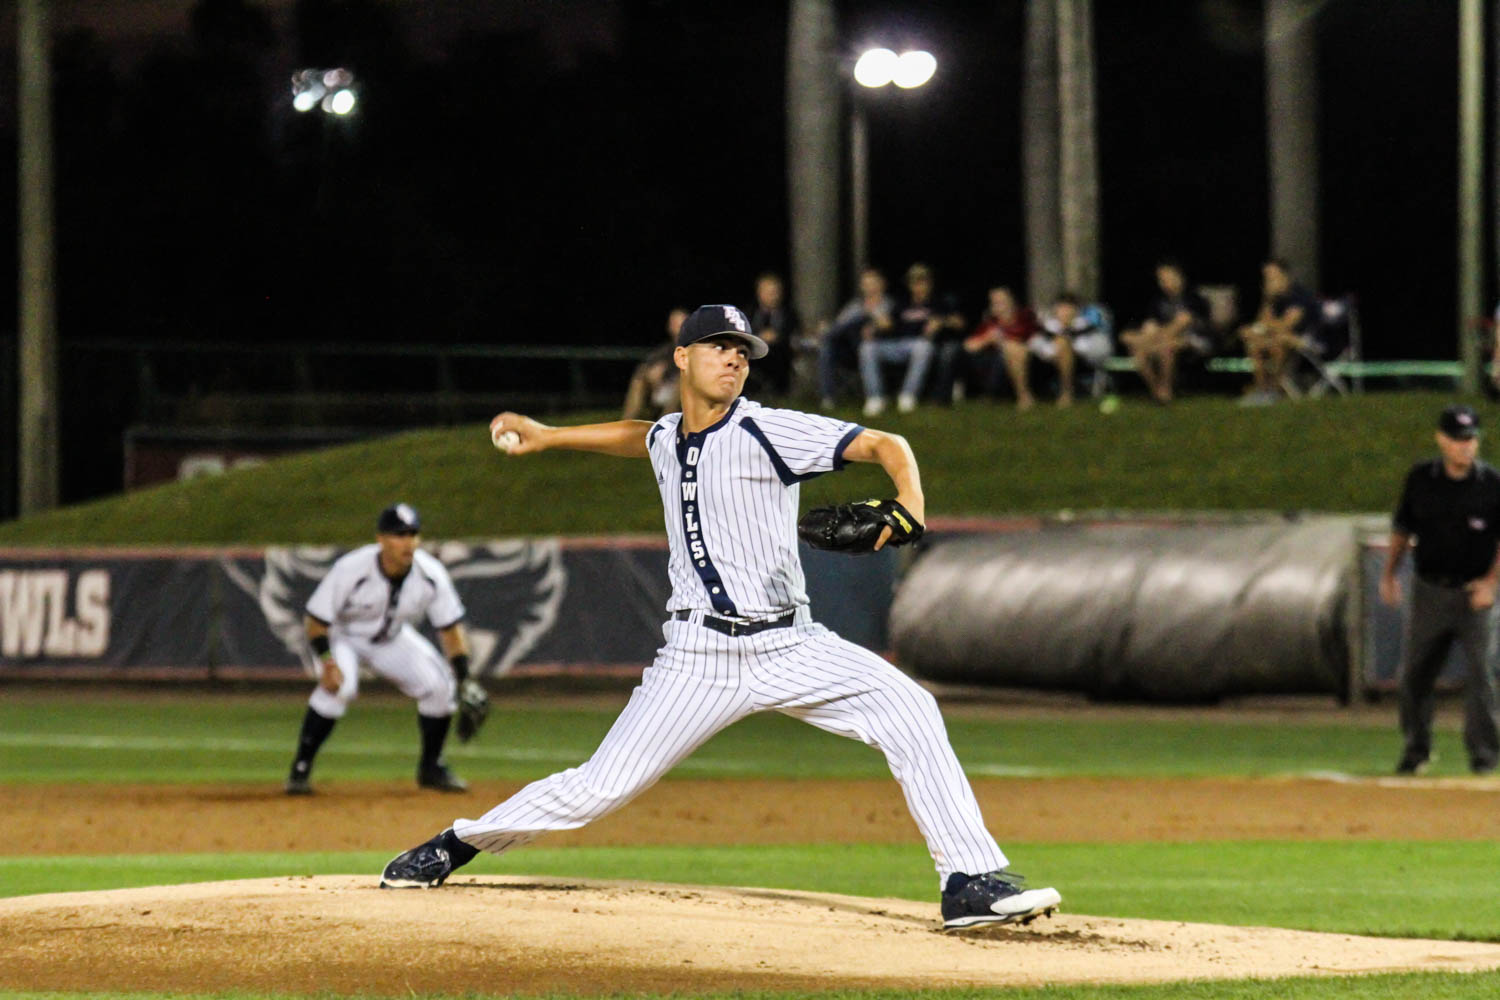 Junior pitcher Alex House  threw his second complete game of the season in his team's win over Marshall on April 14, 2016. Alexander Rodriguez | Contributing Photographer